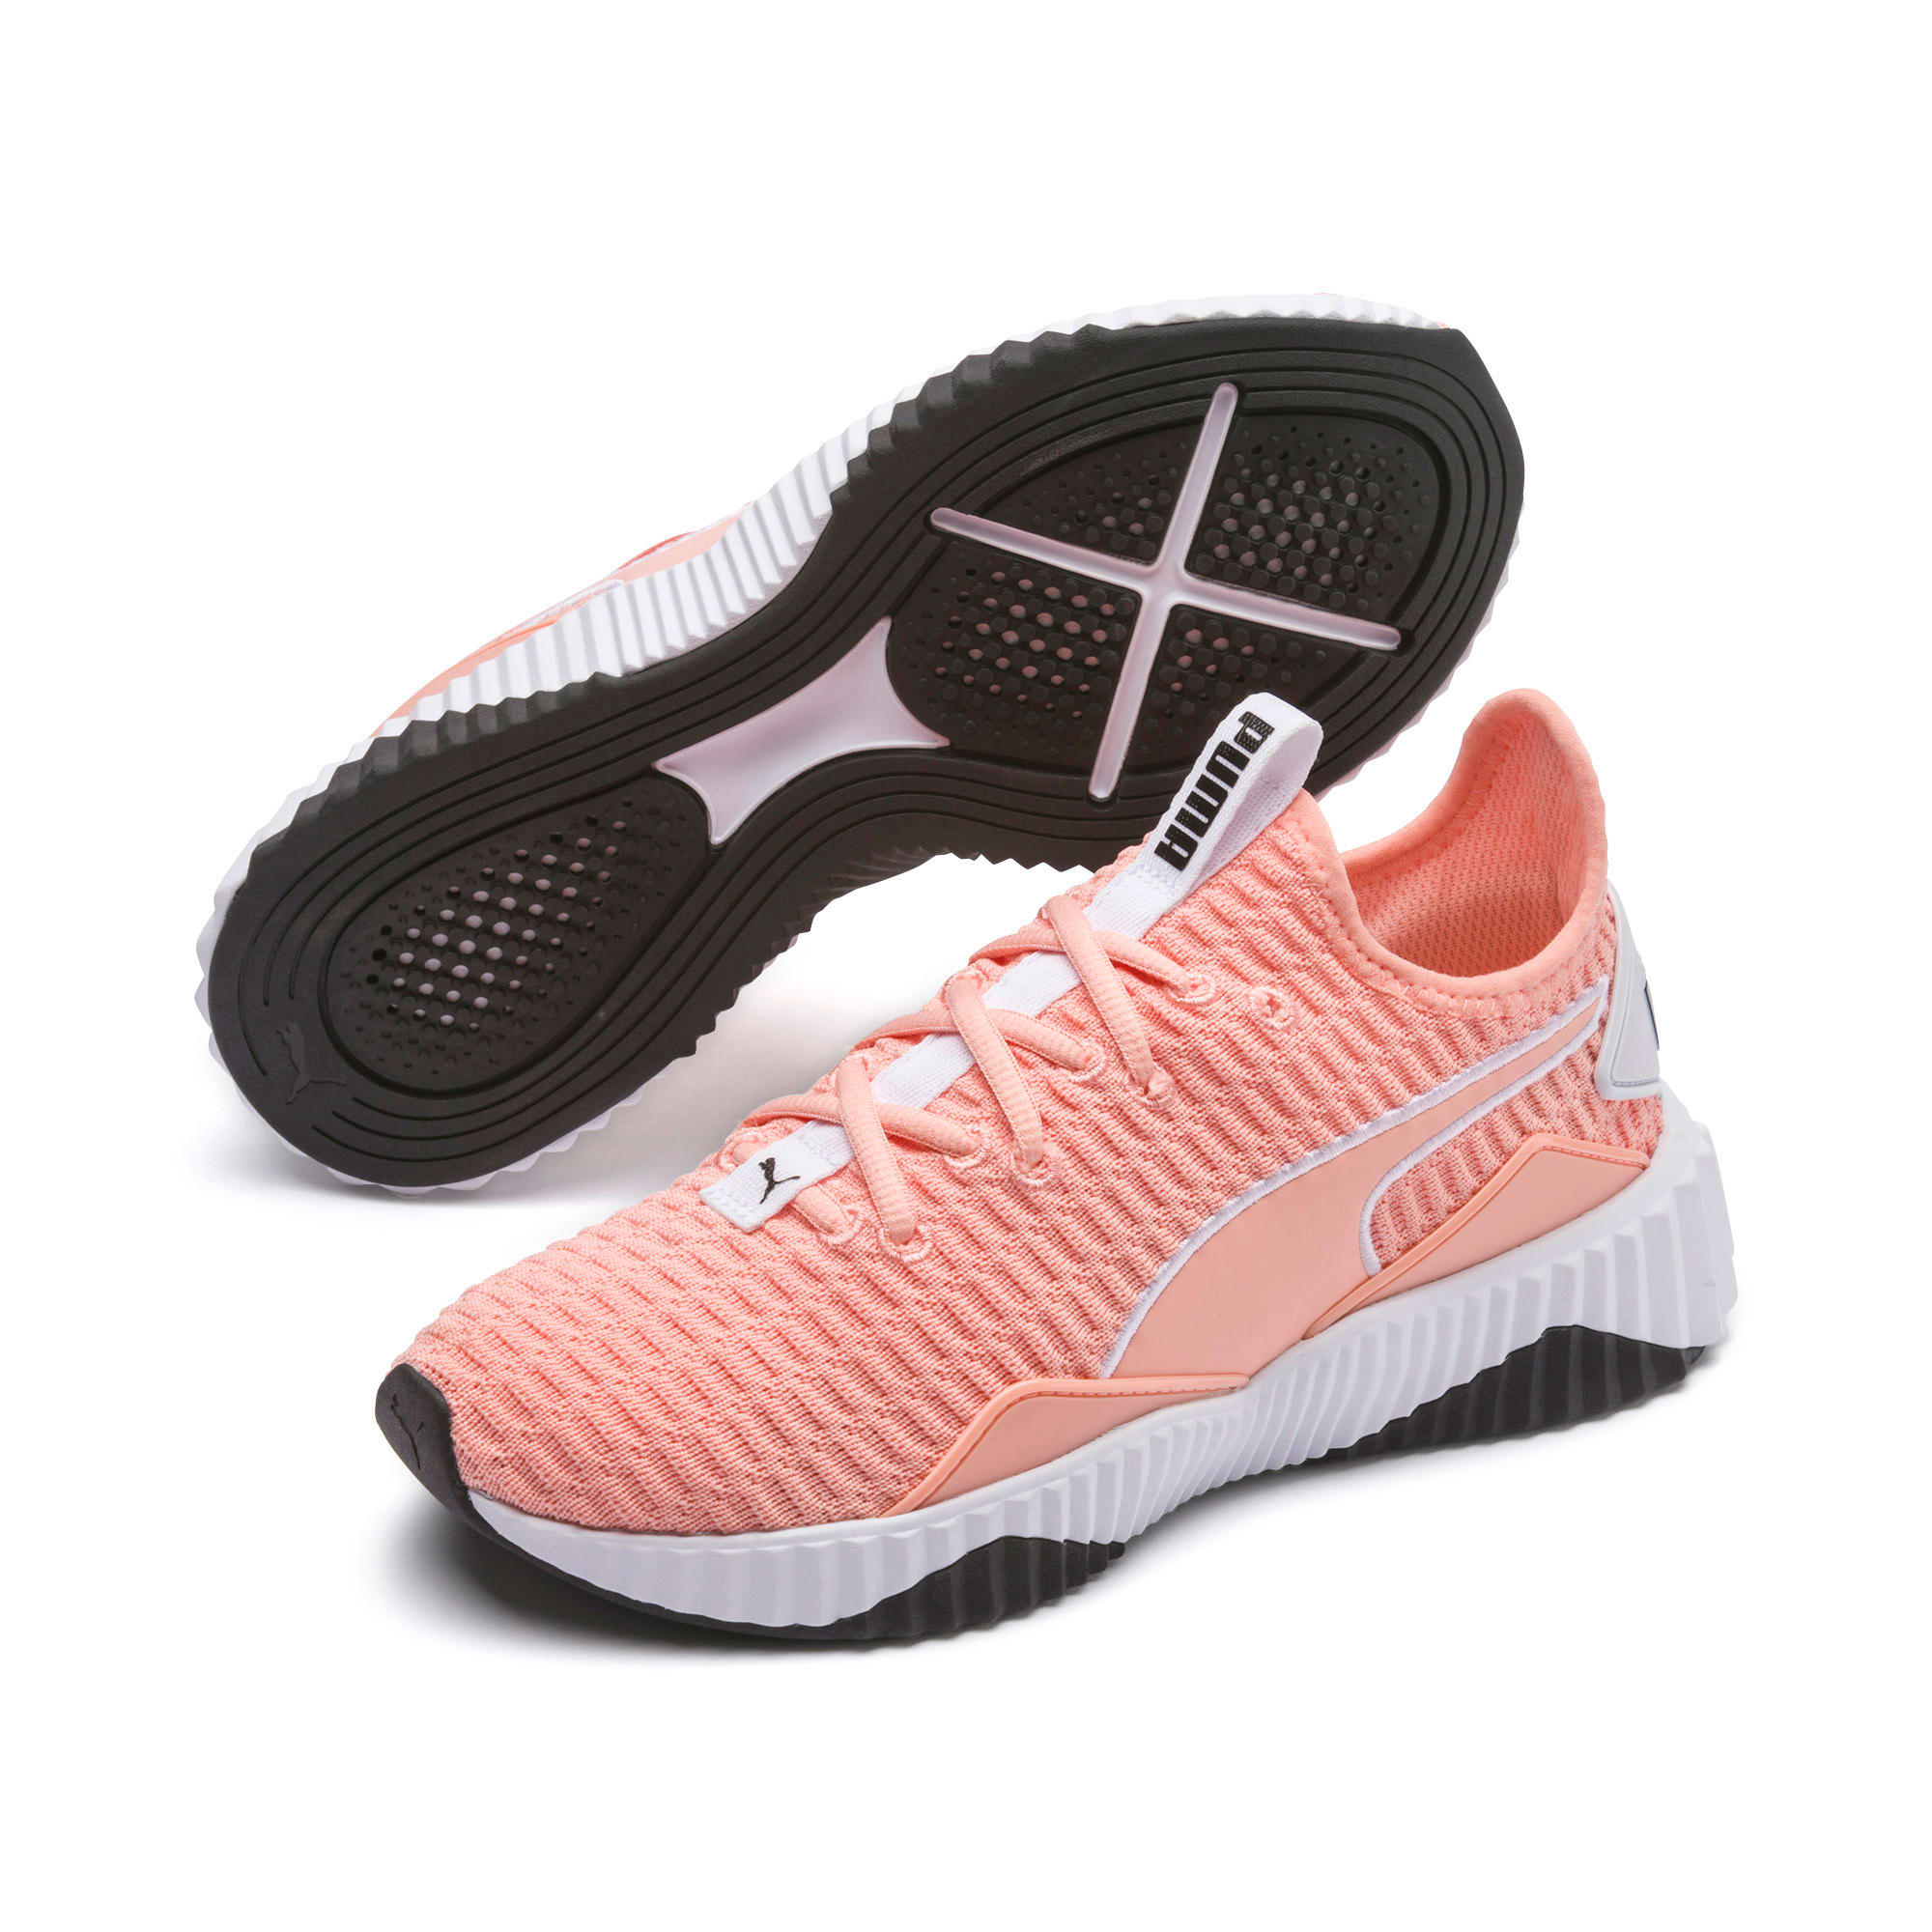 Thumbnail 3 of Defy Women's Training Shoes, Peach Bud-Puma White, medium